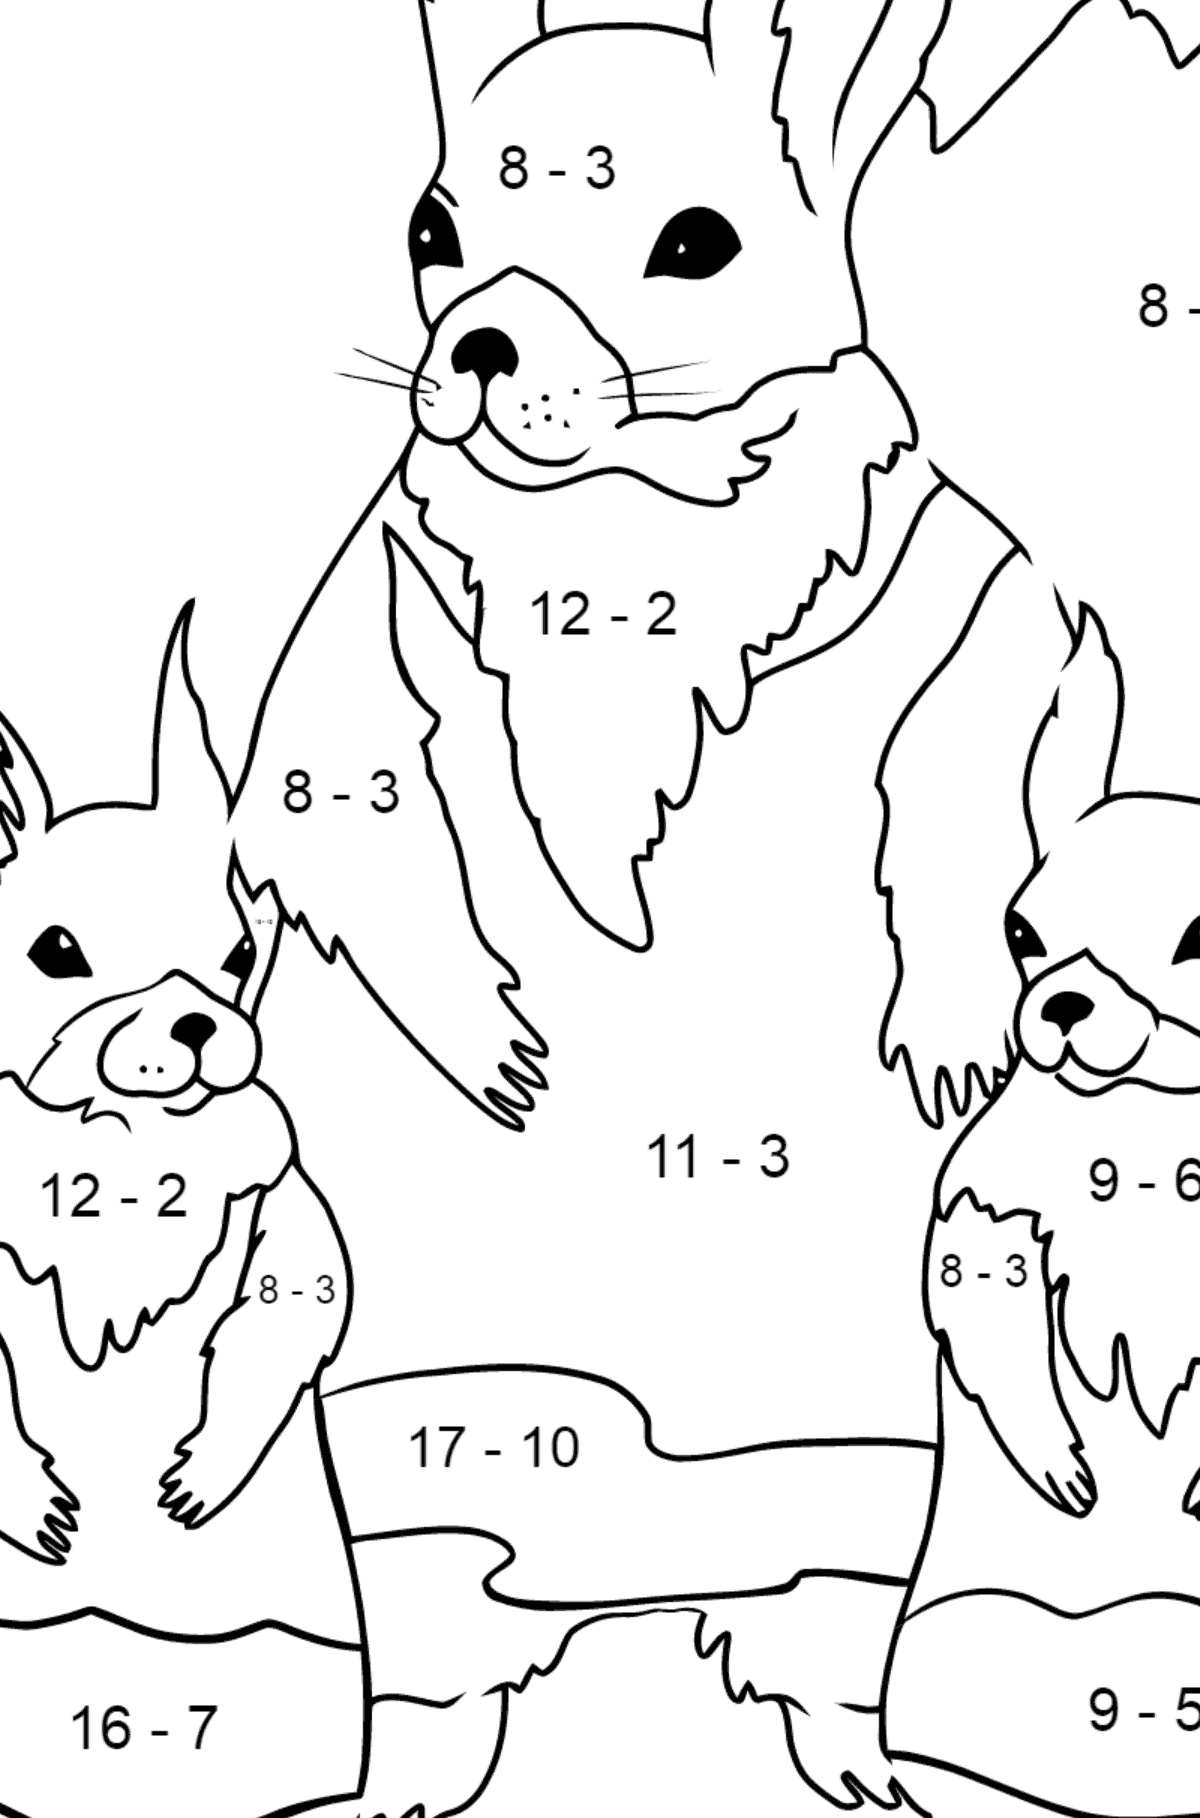 Spring Coloring Page - Squirrels are Preparing to Greet the Sun for Children  - Color by Number Substraction